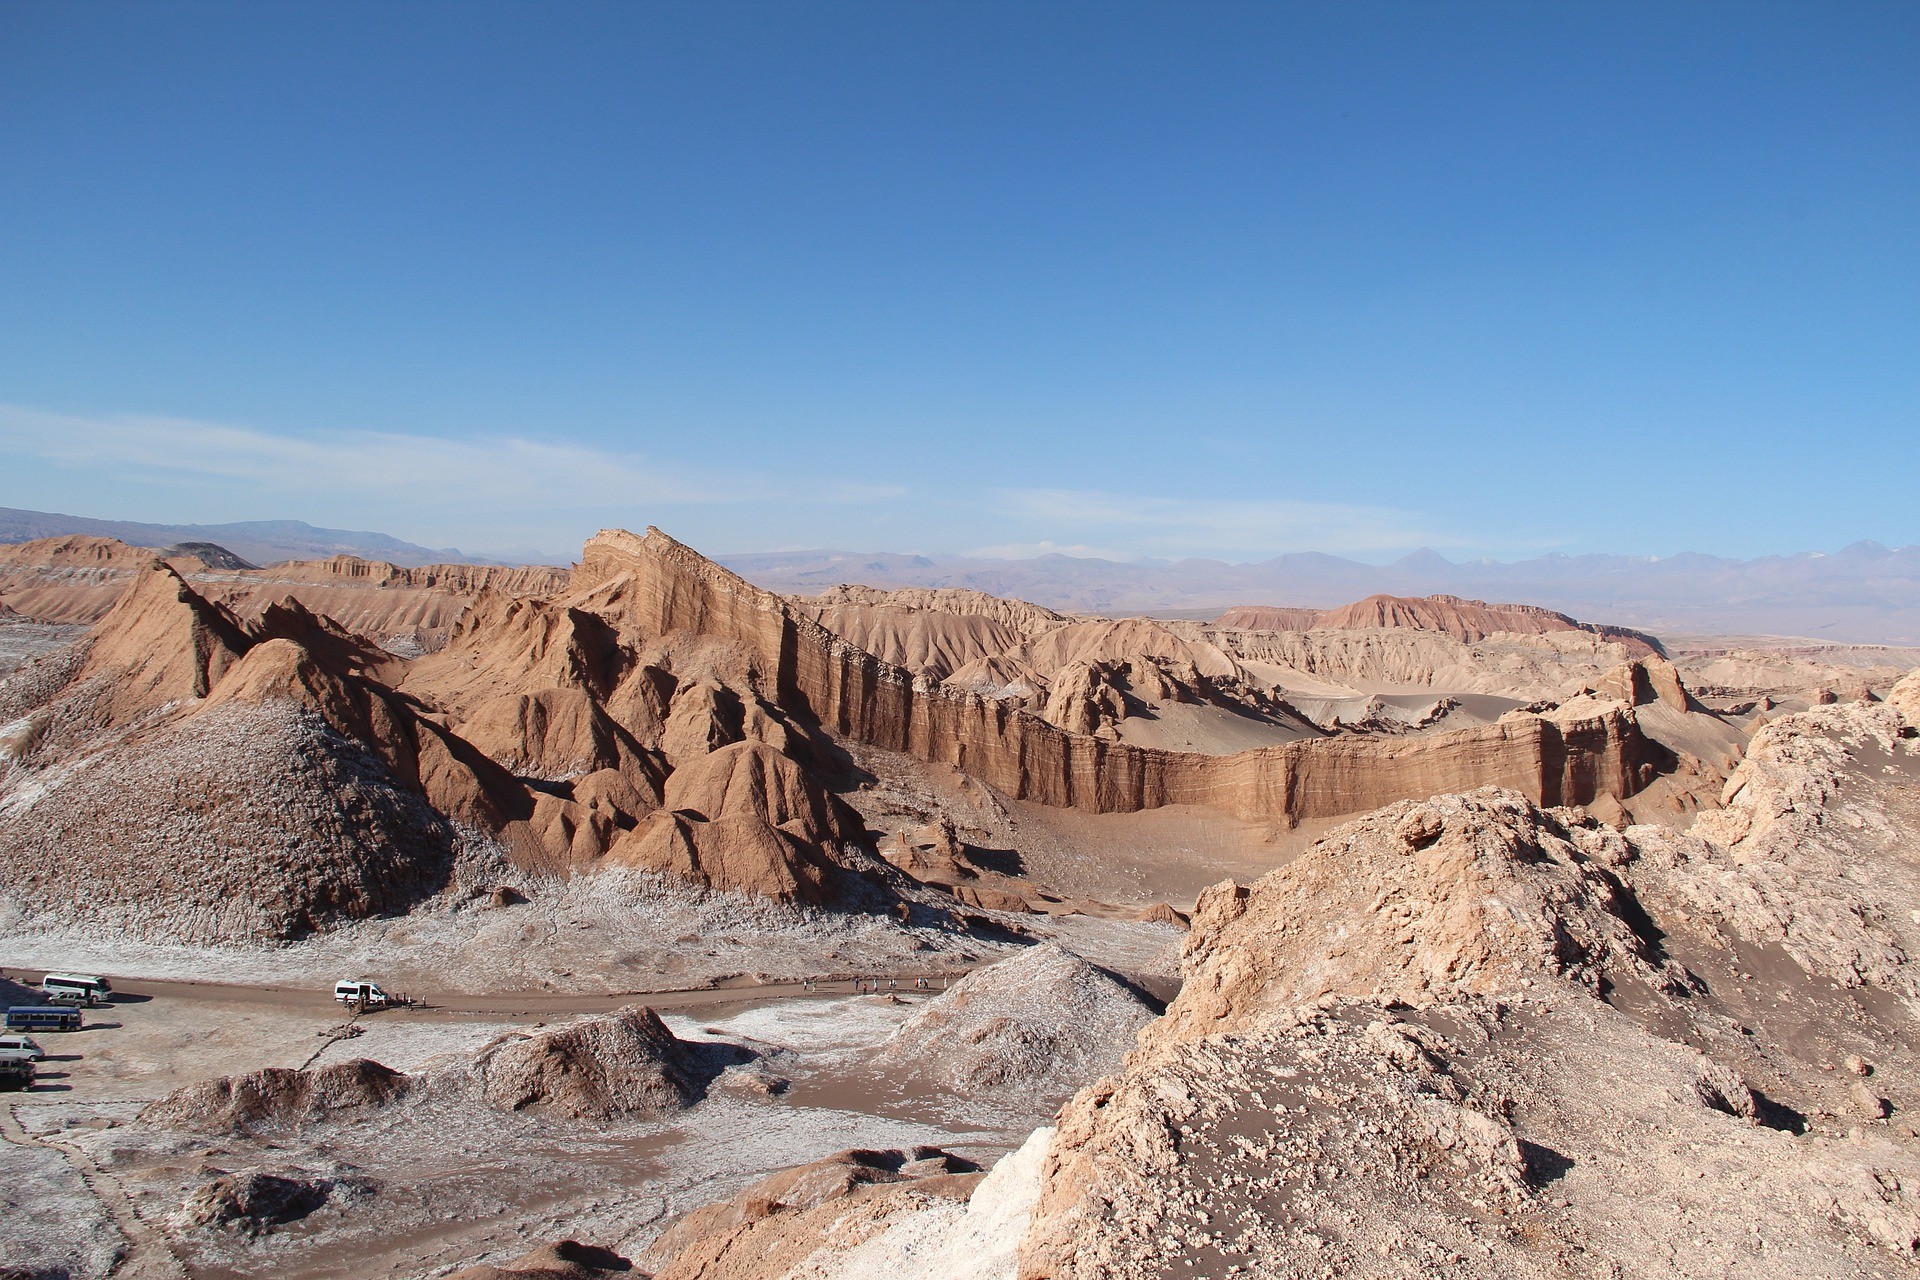 valley-of-the-moon-965650_1920